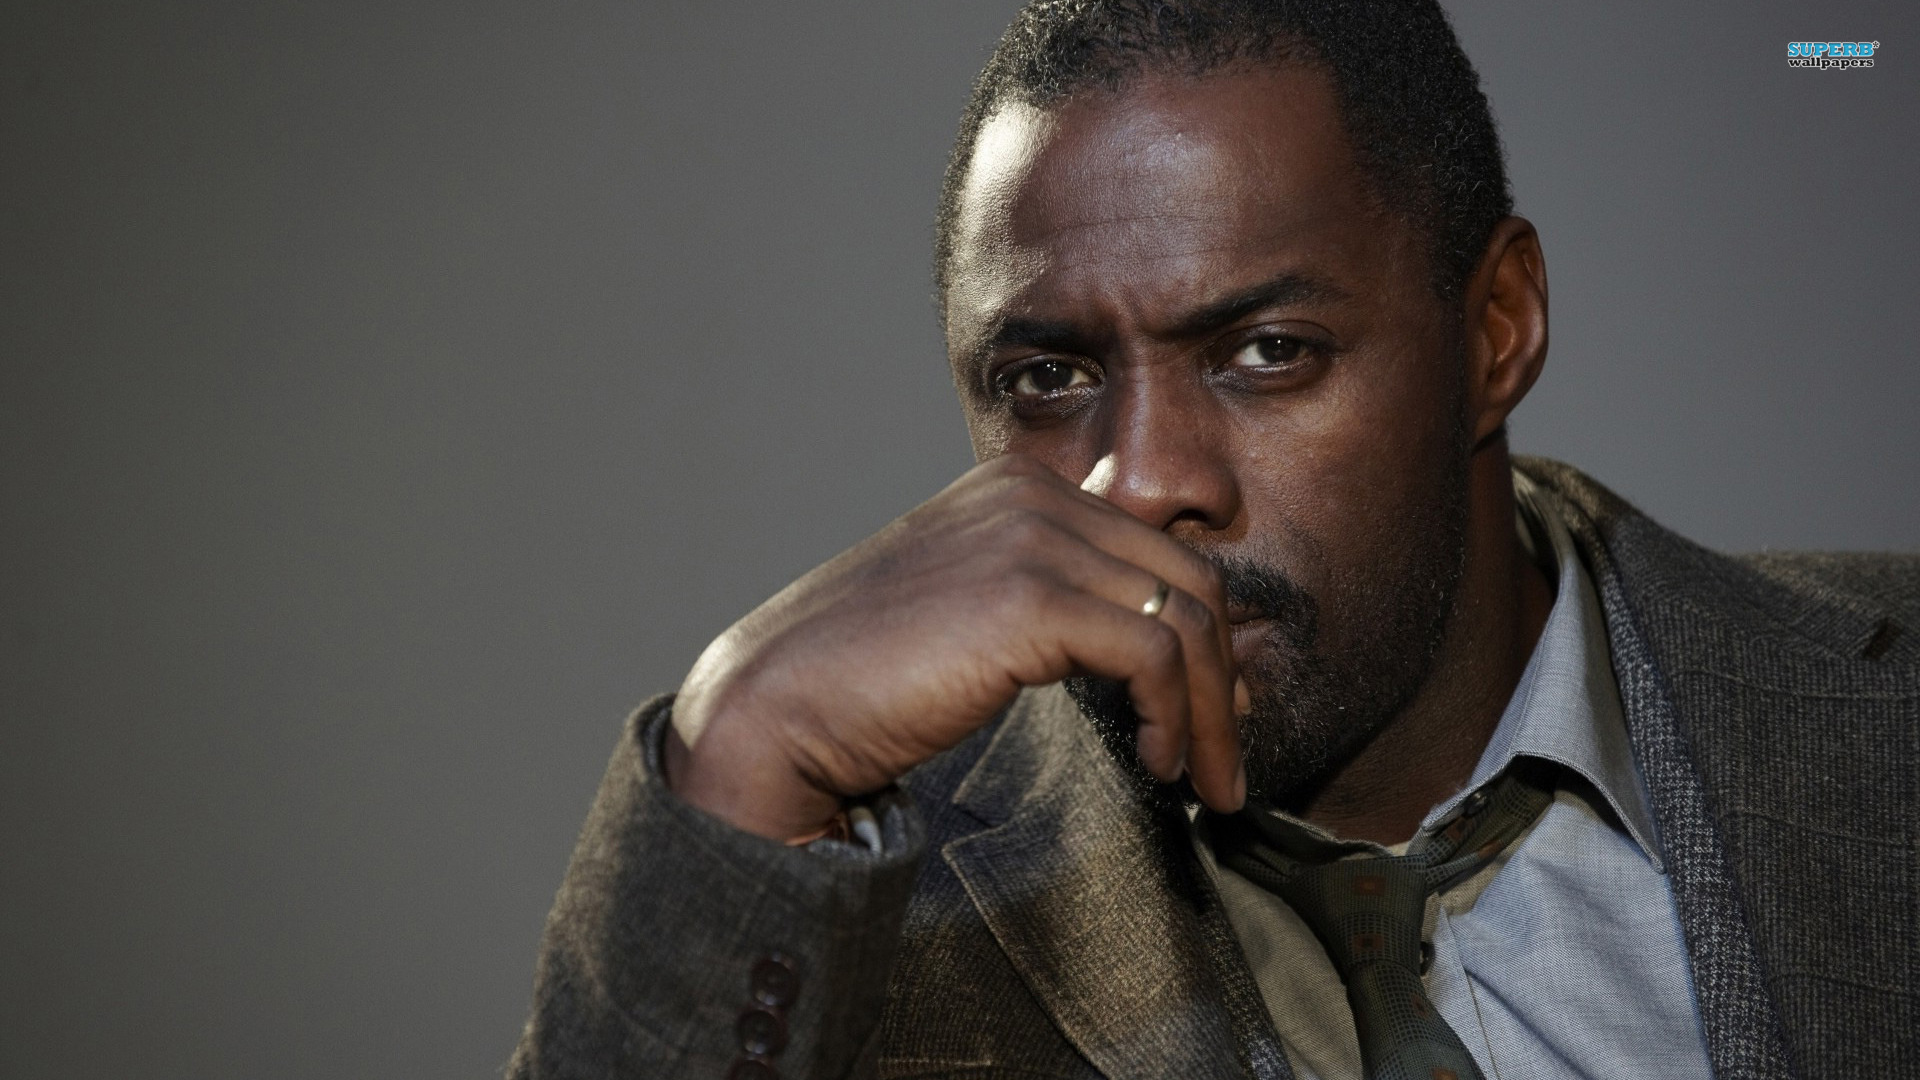 Idris Elba wallpaper 1920x1080